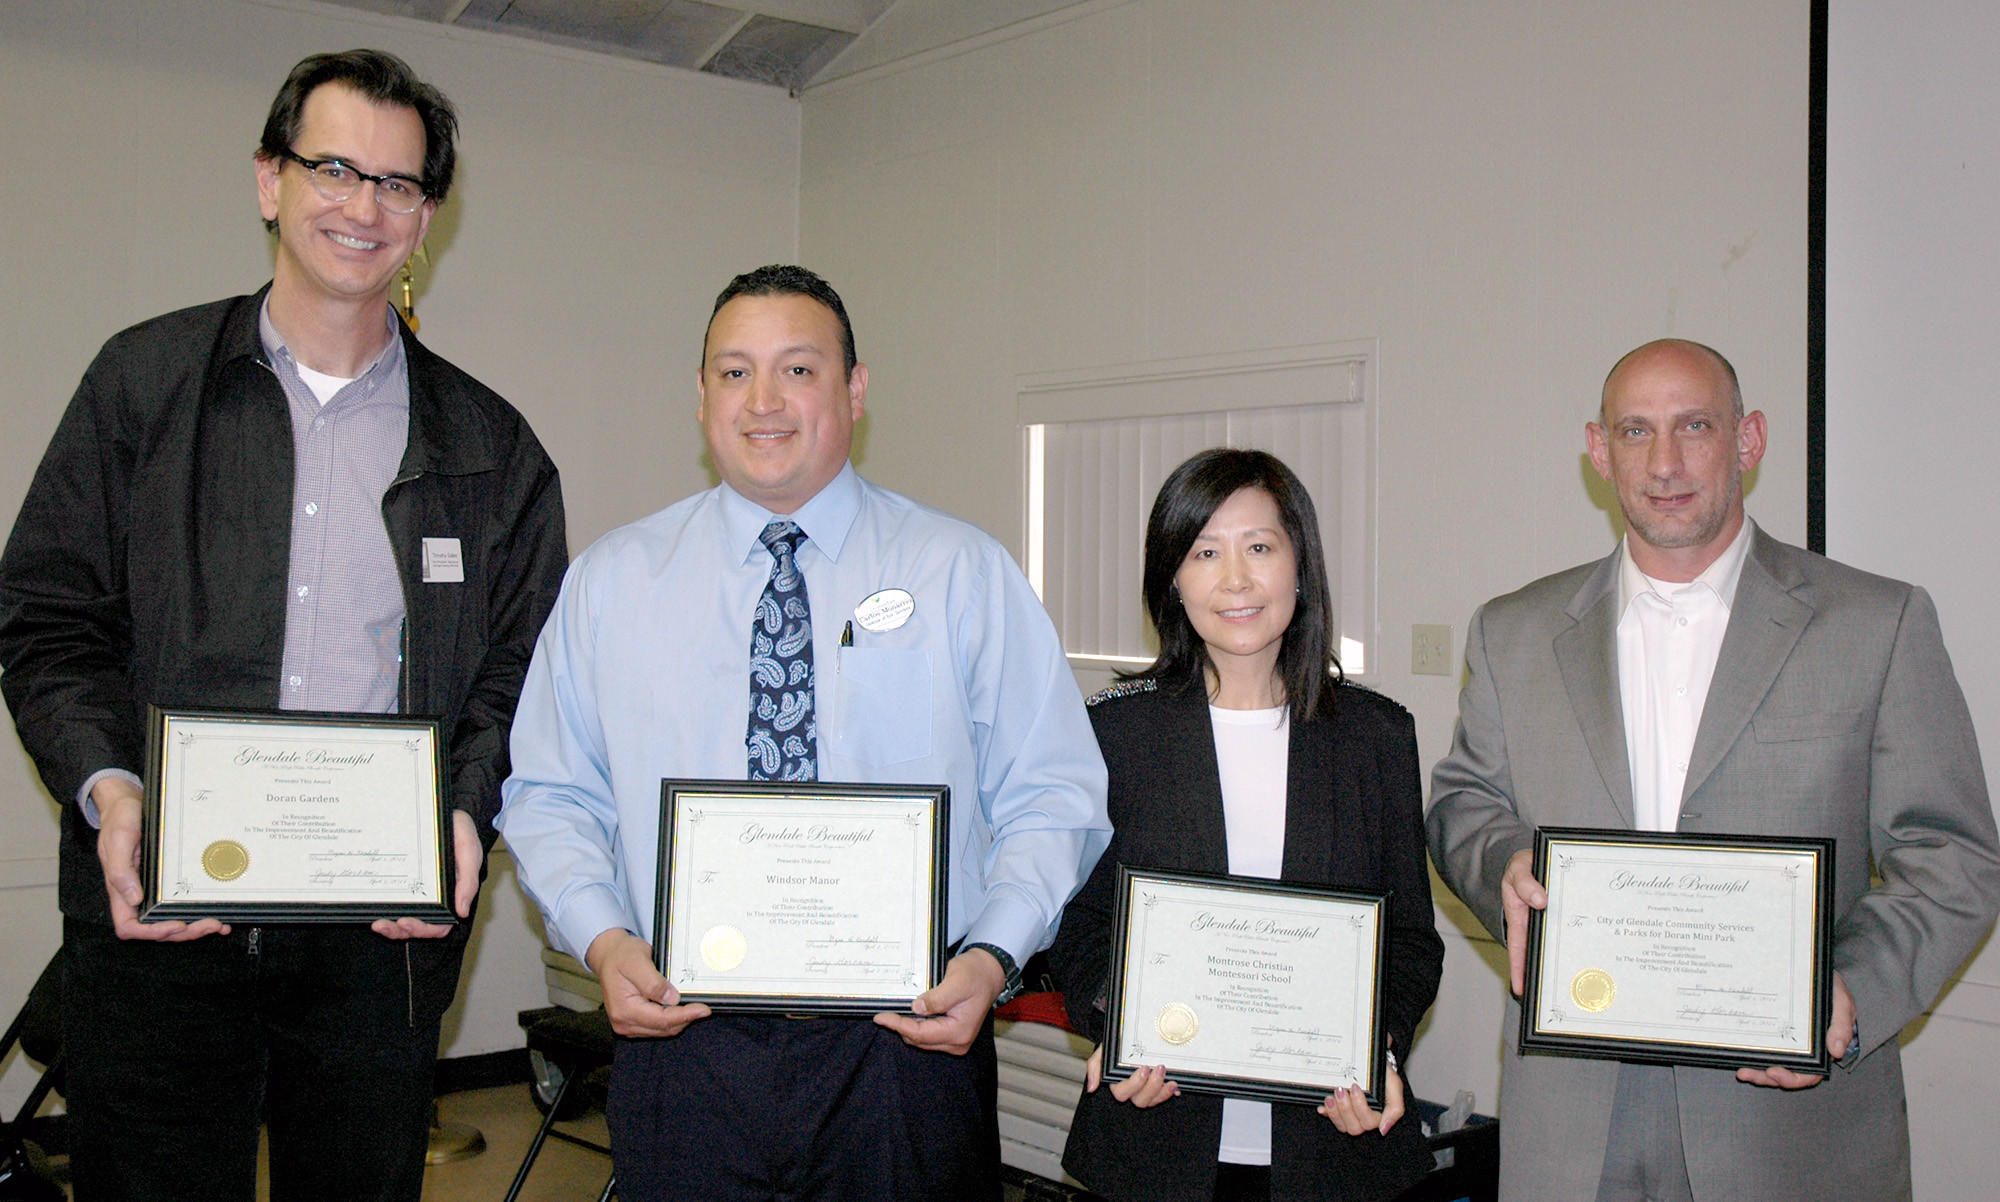 Glendale Beautiful award recipients are, from left, Timothy Sales for Doran Gardens; Carlos Monarrez for Windsor Gardens; Sharon Lee for Montrose Christian Montessori School; and Michael Fortney, representing the city of Glendale Community Services & Parks for Doran Mini Park.